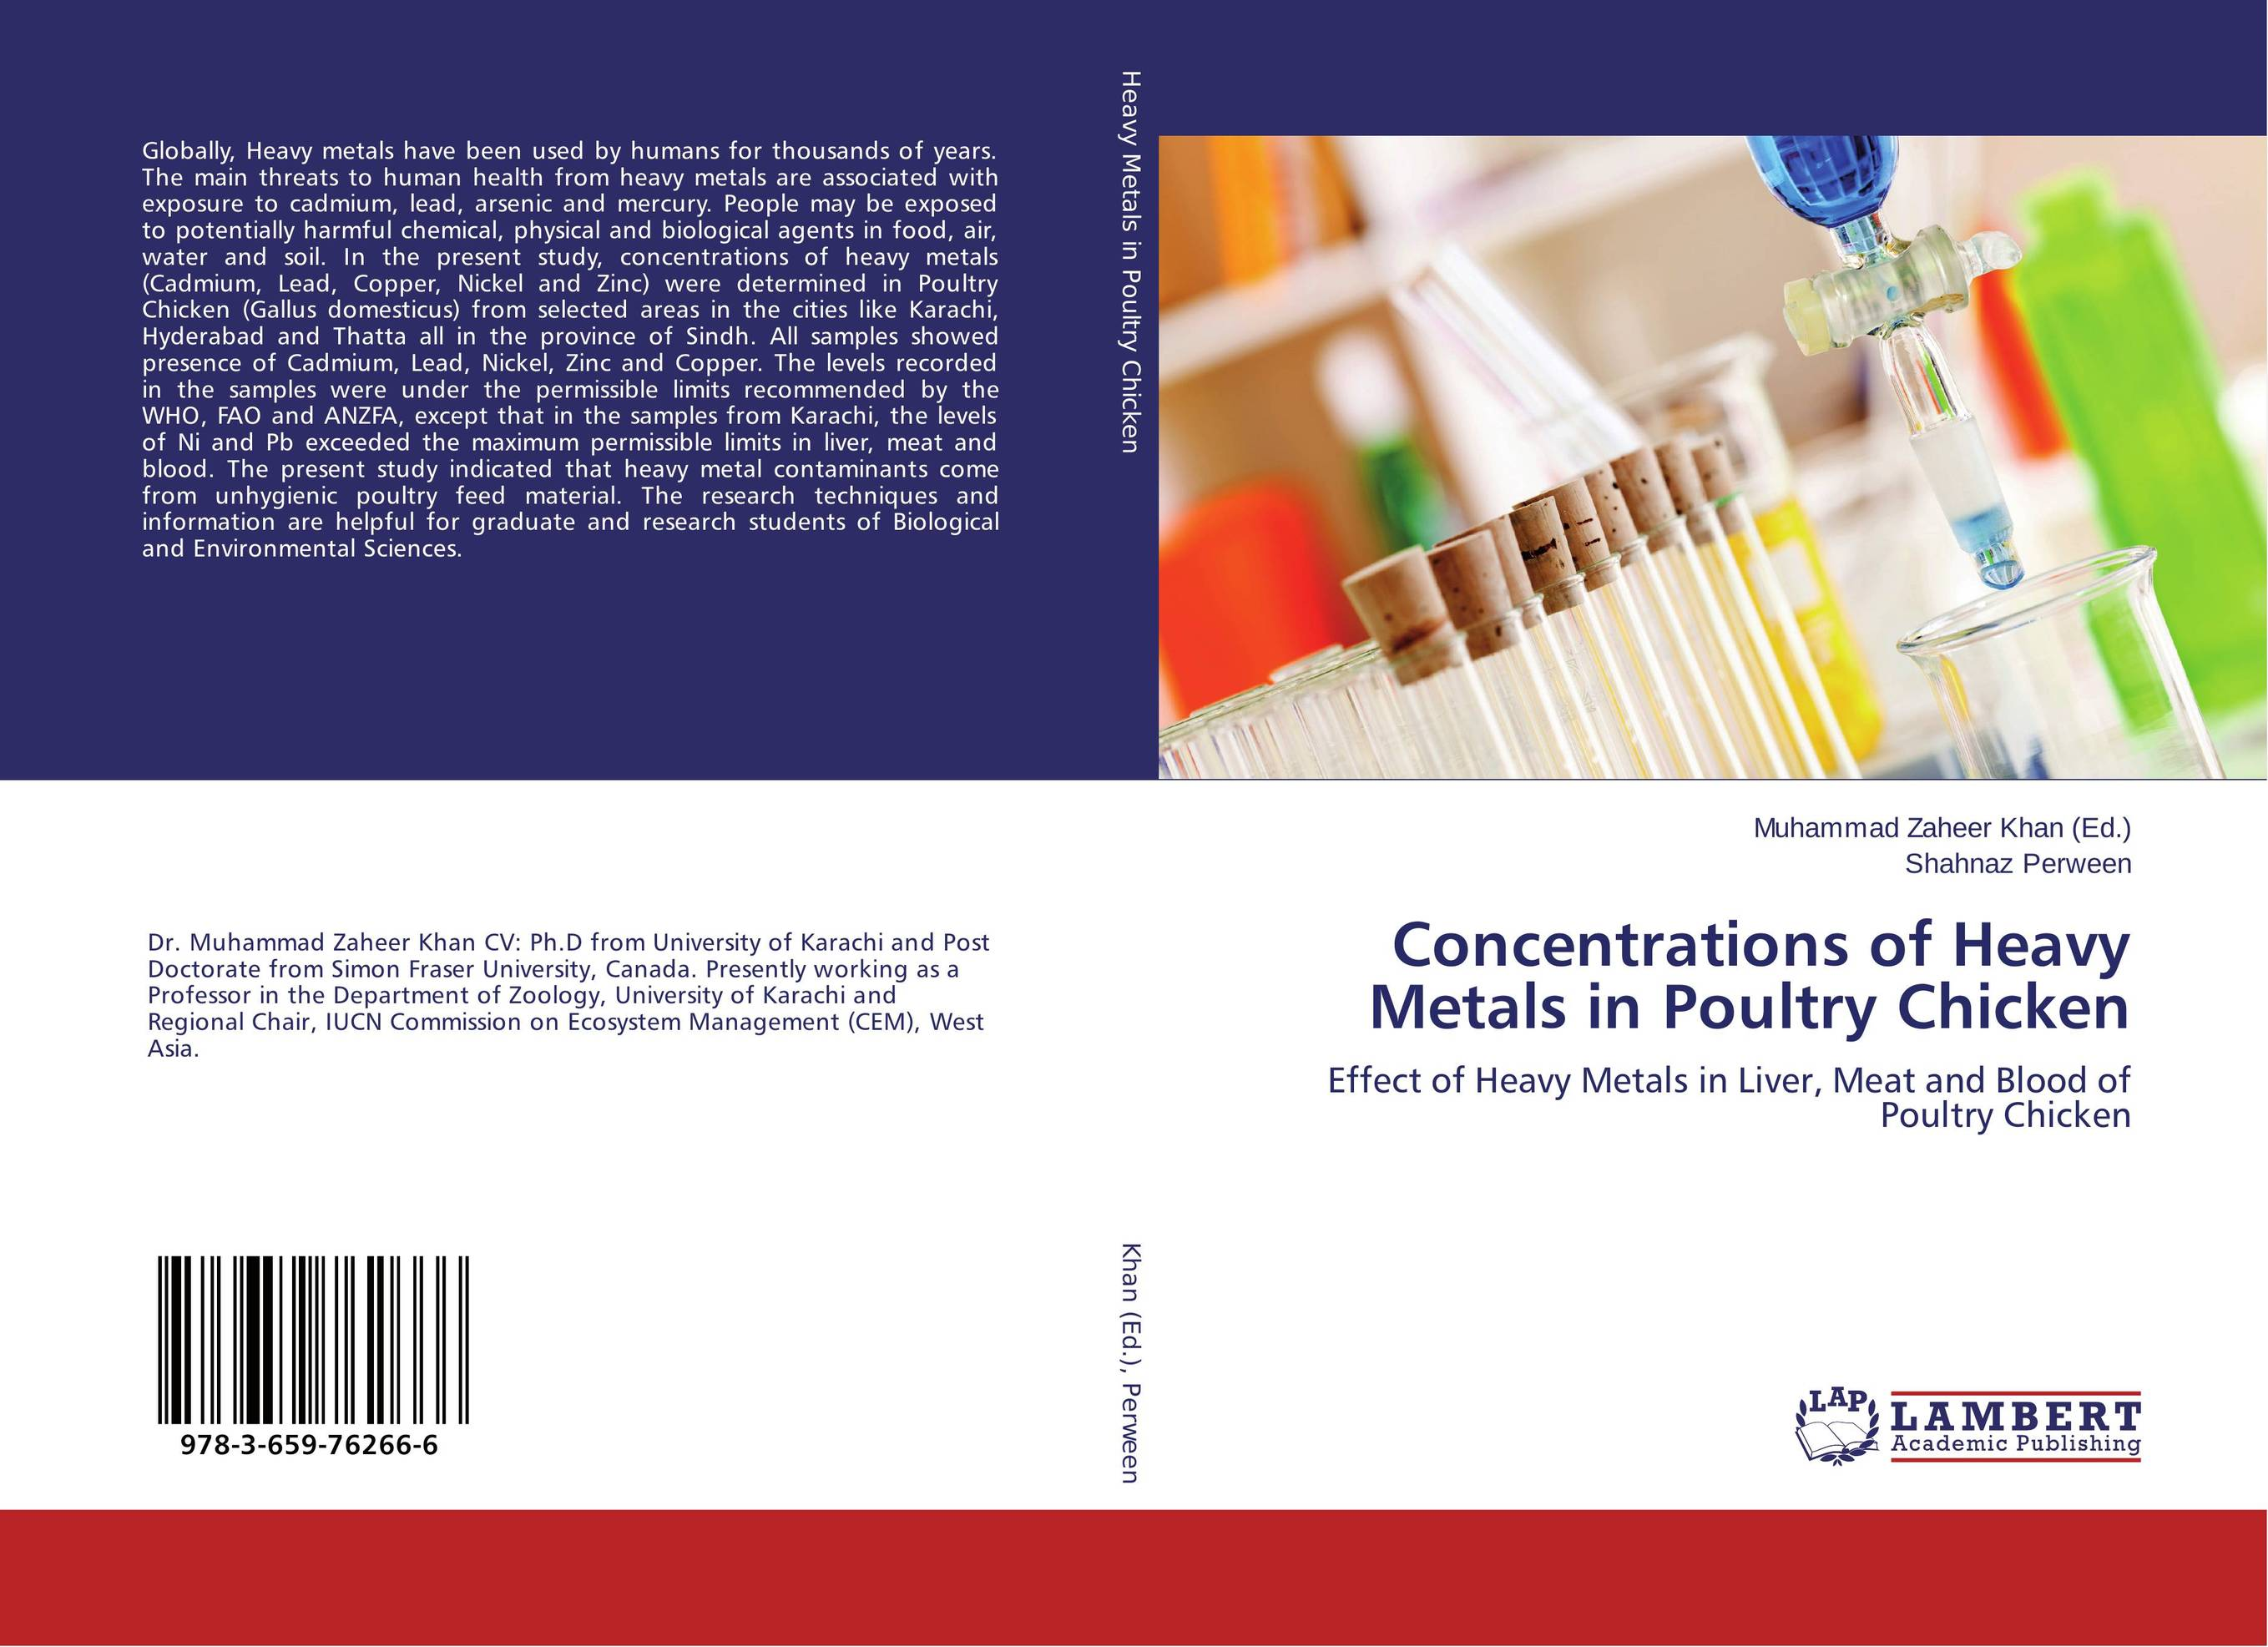 Concentrations of Heavy Metals in Poultry Chicken